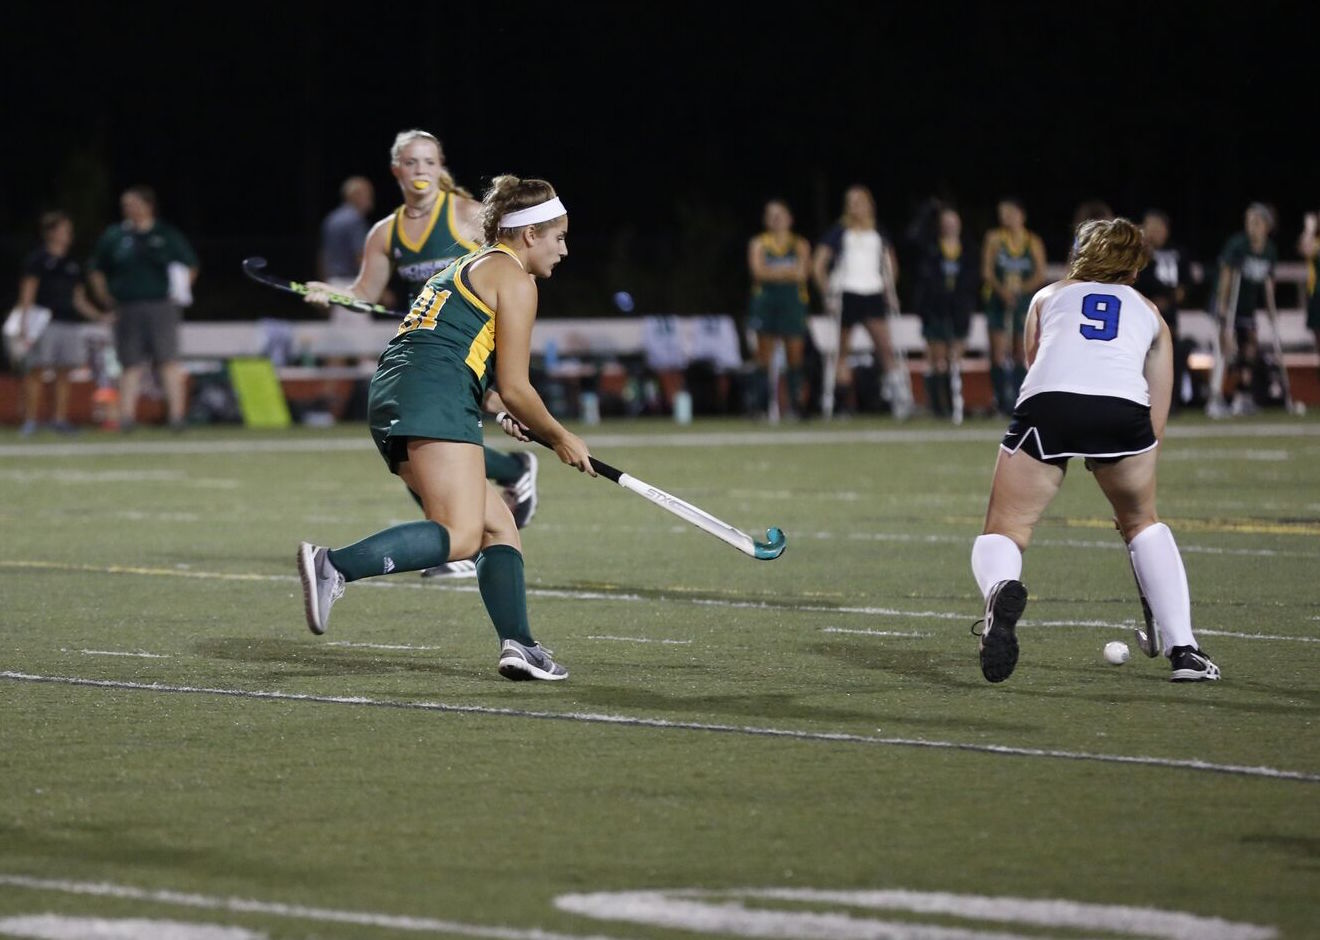 Falcons Upend Pilgrims, 5-1 In Season Opener